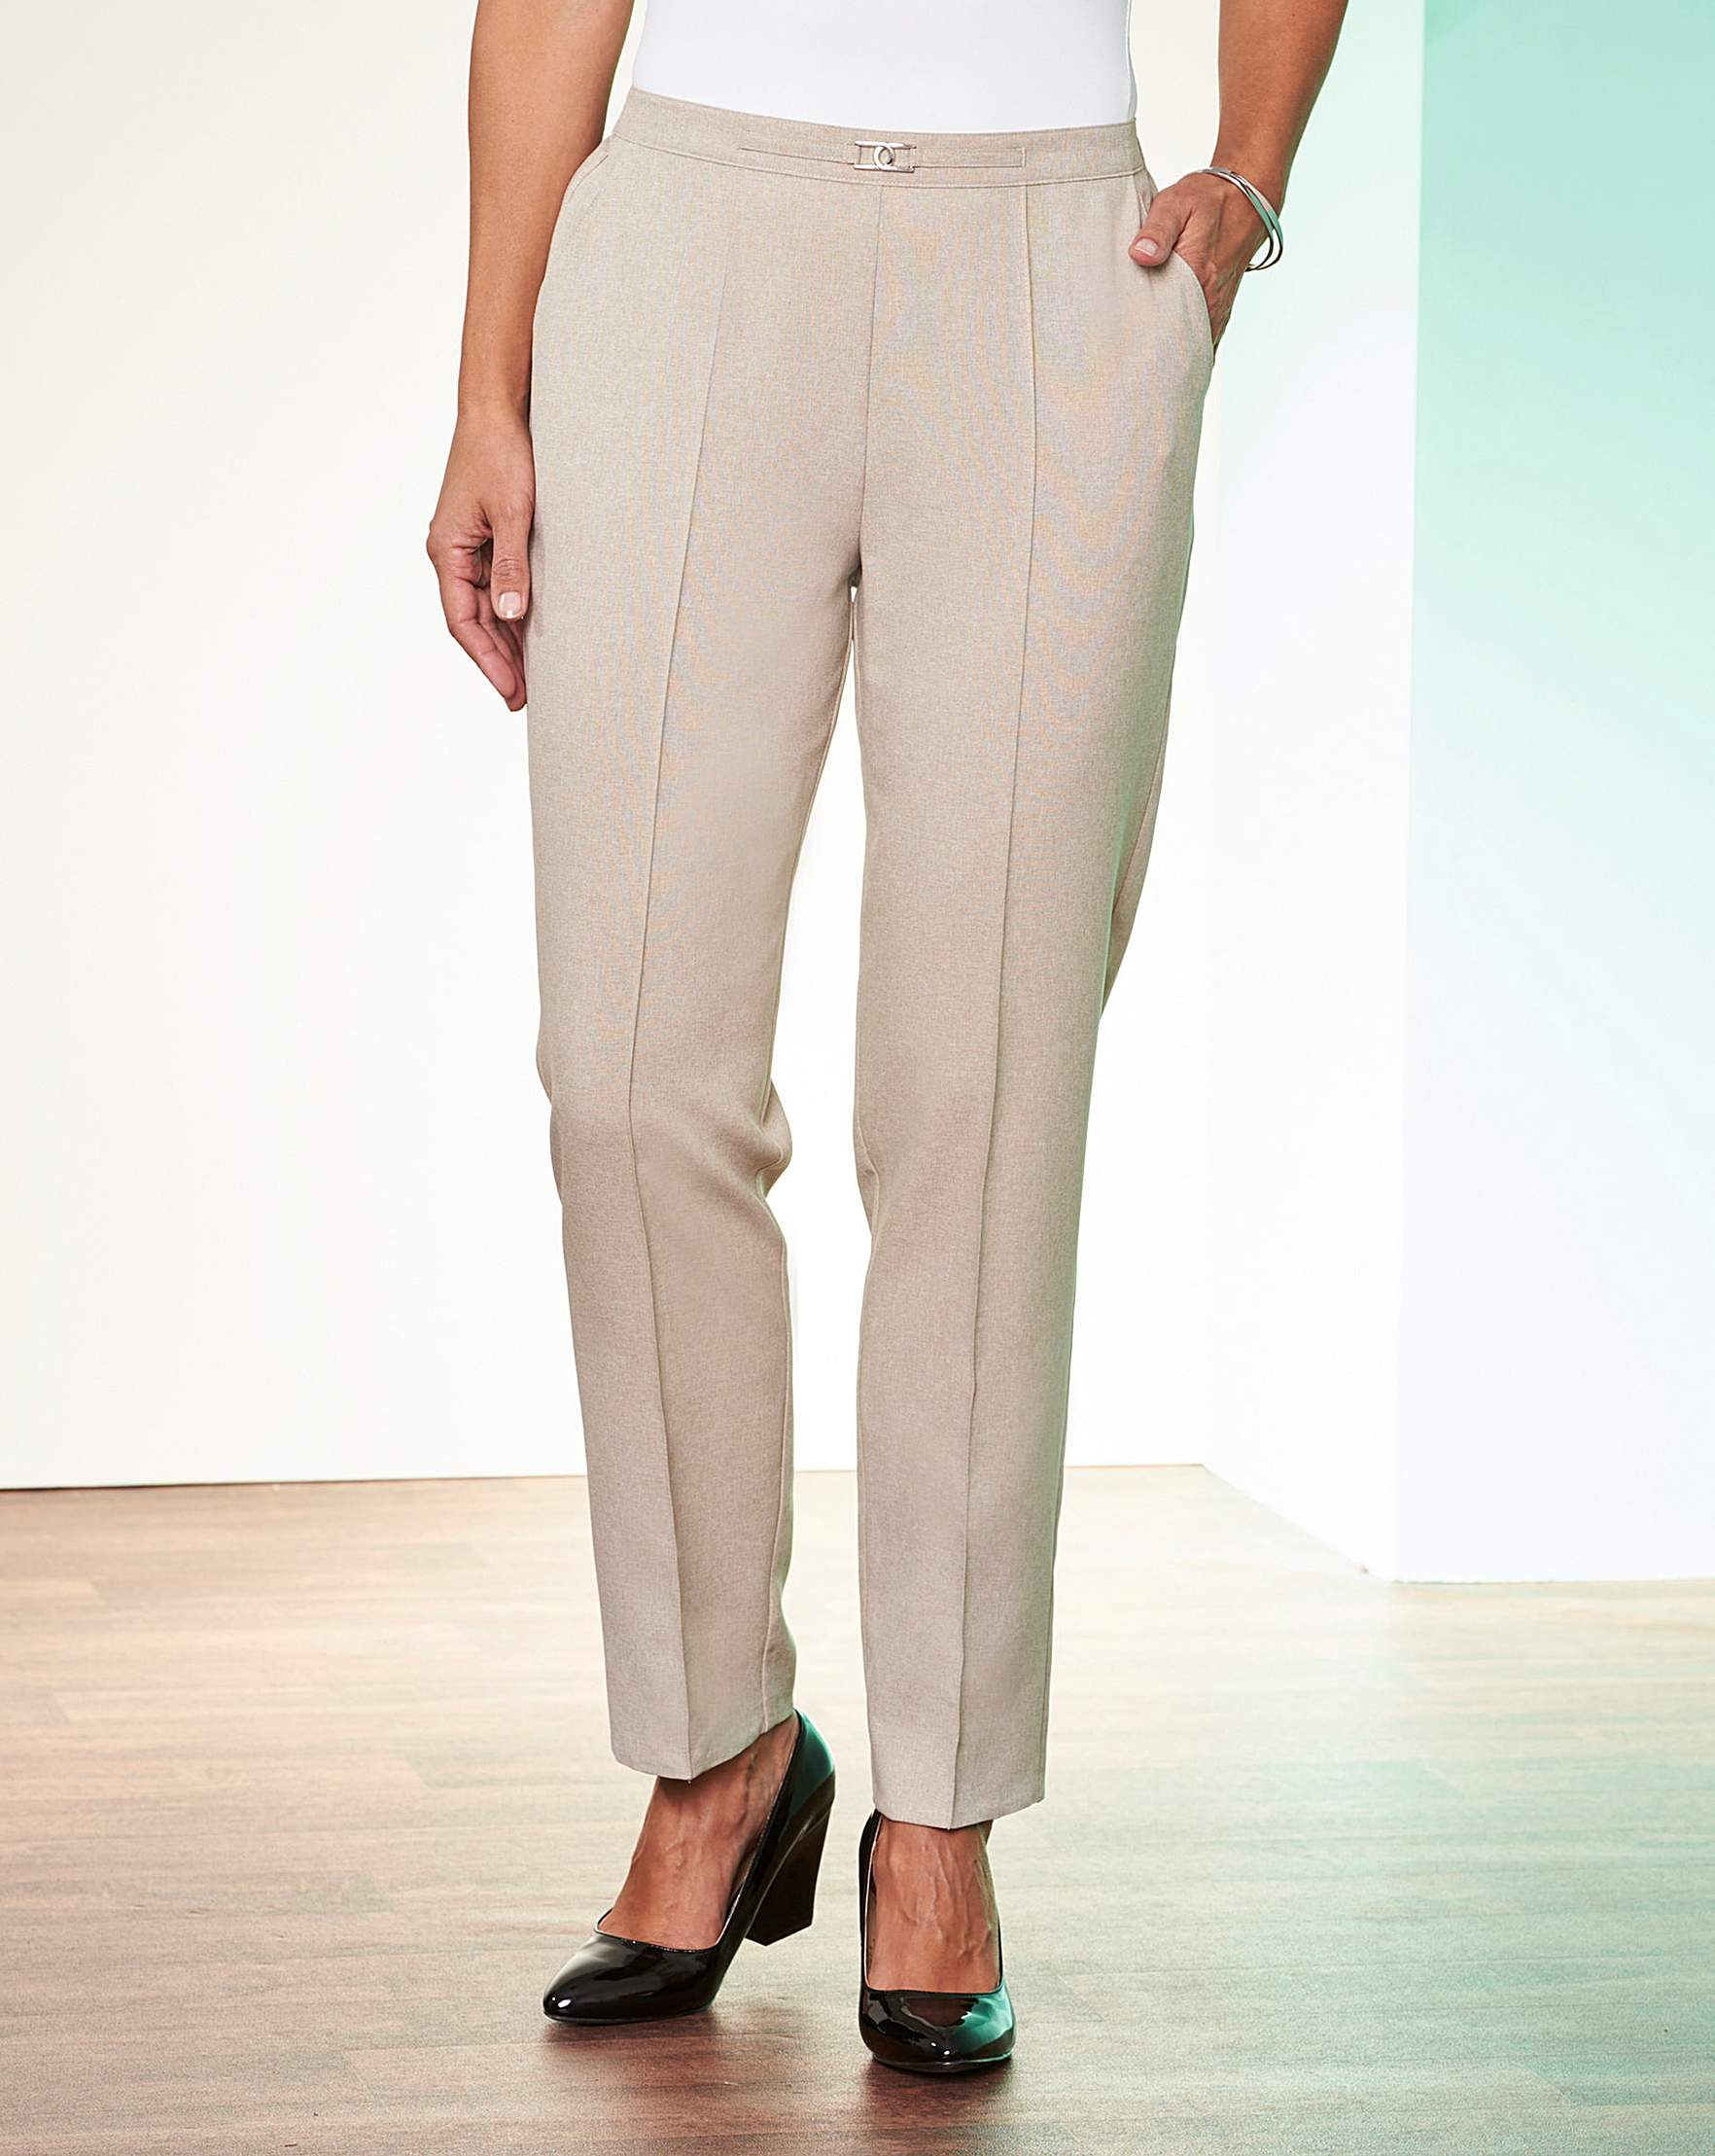 a9d6e9b1c32 Slimma Pull on Trousers Extra Short